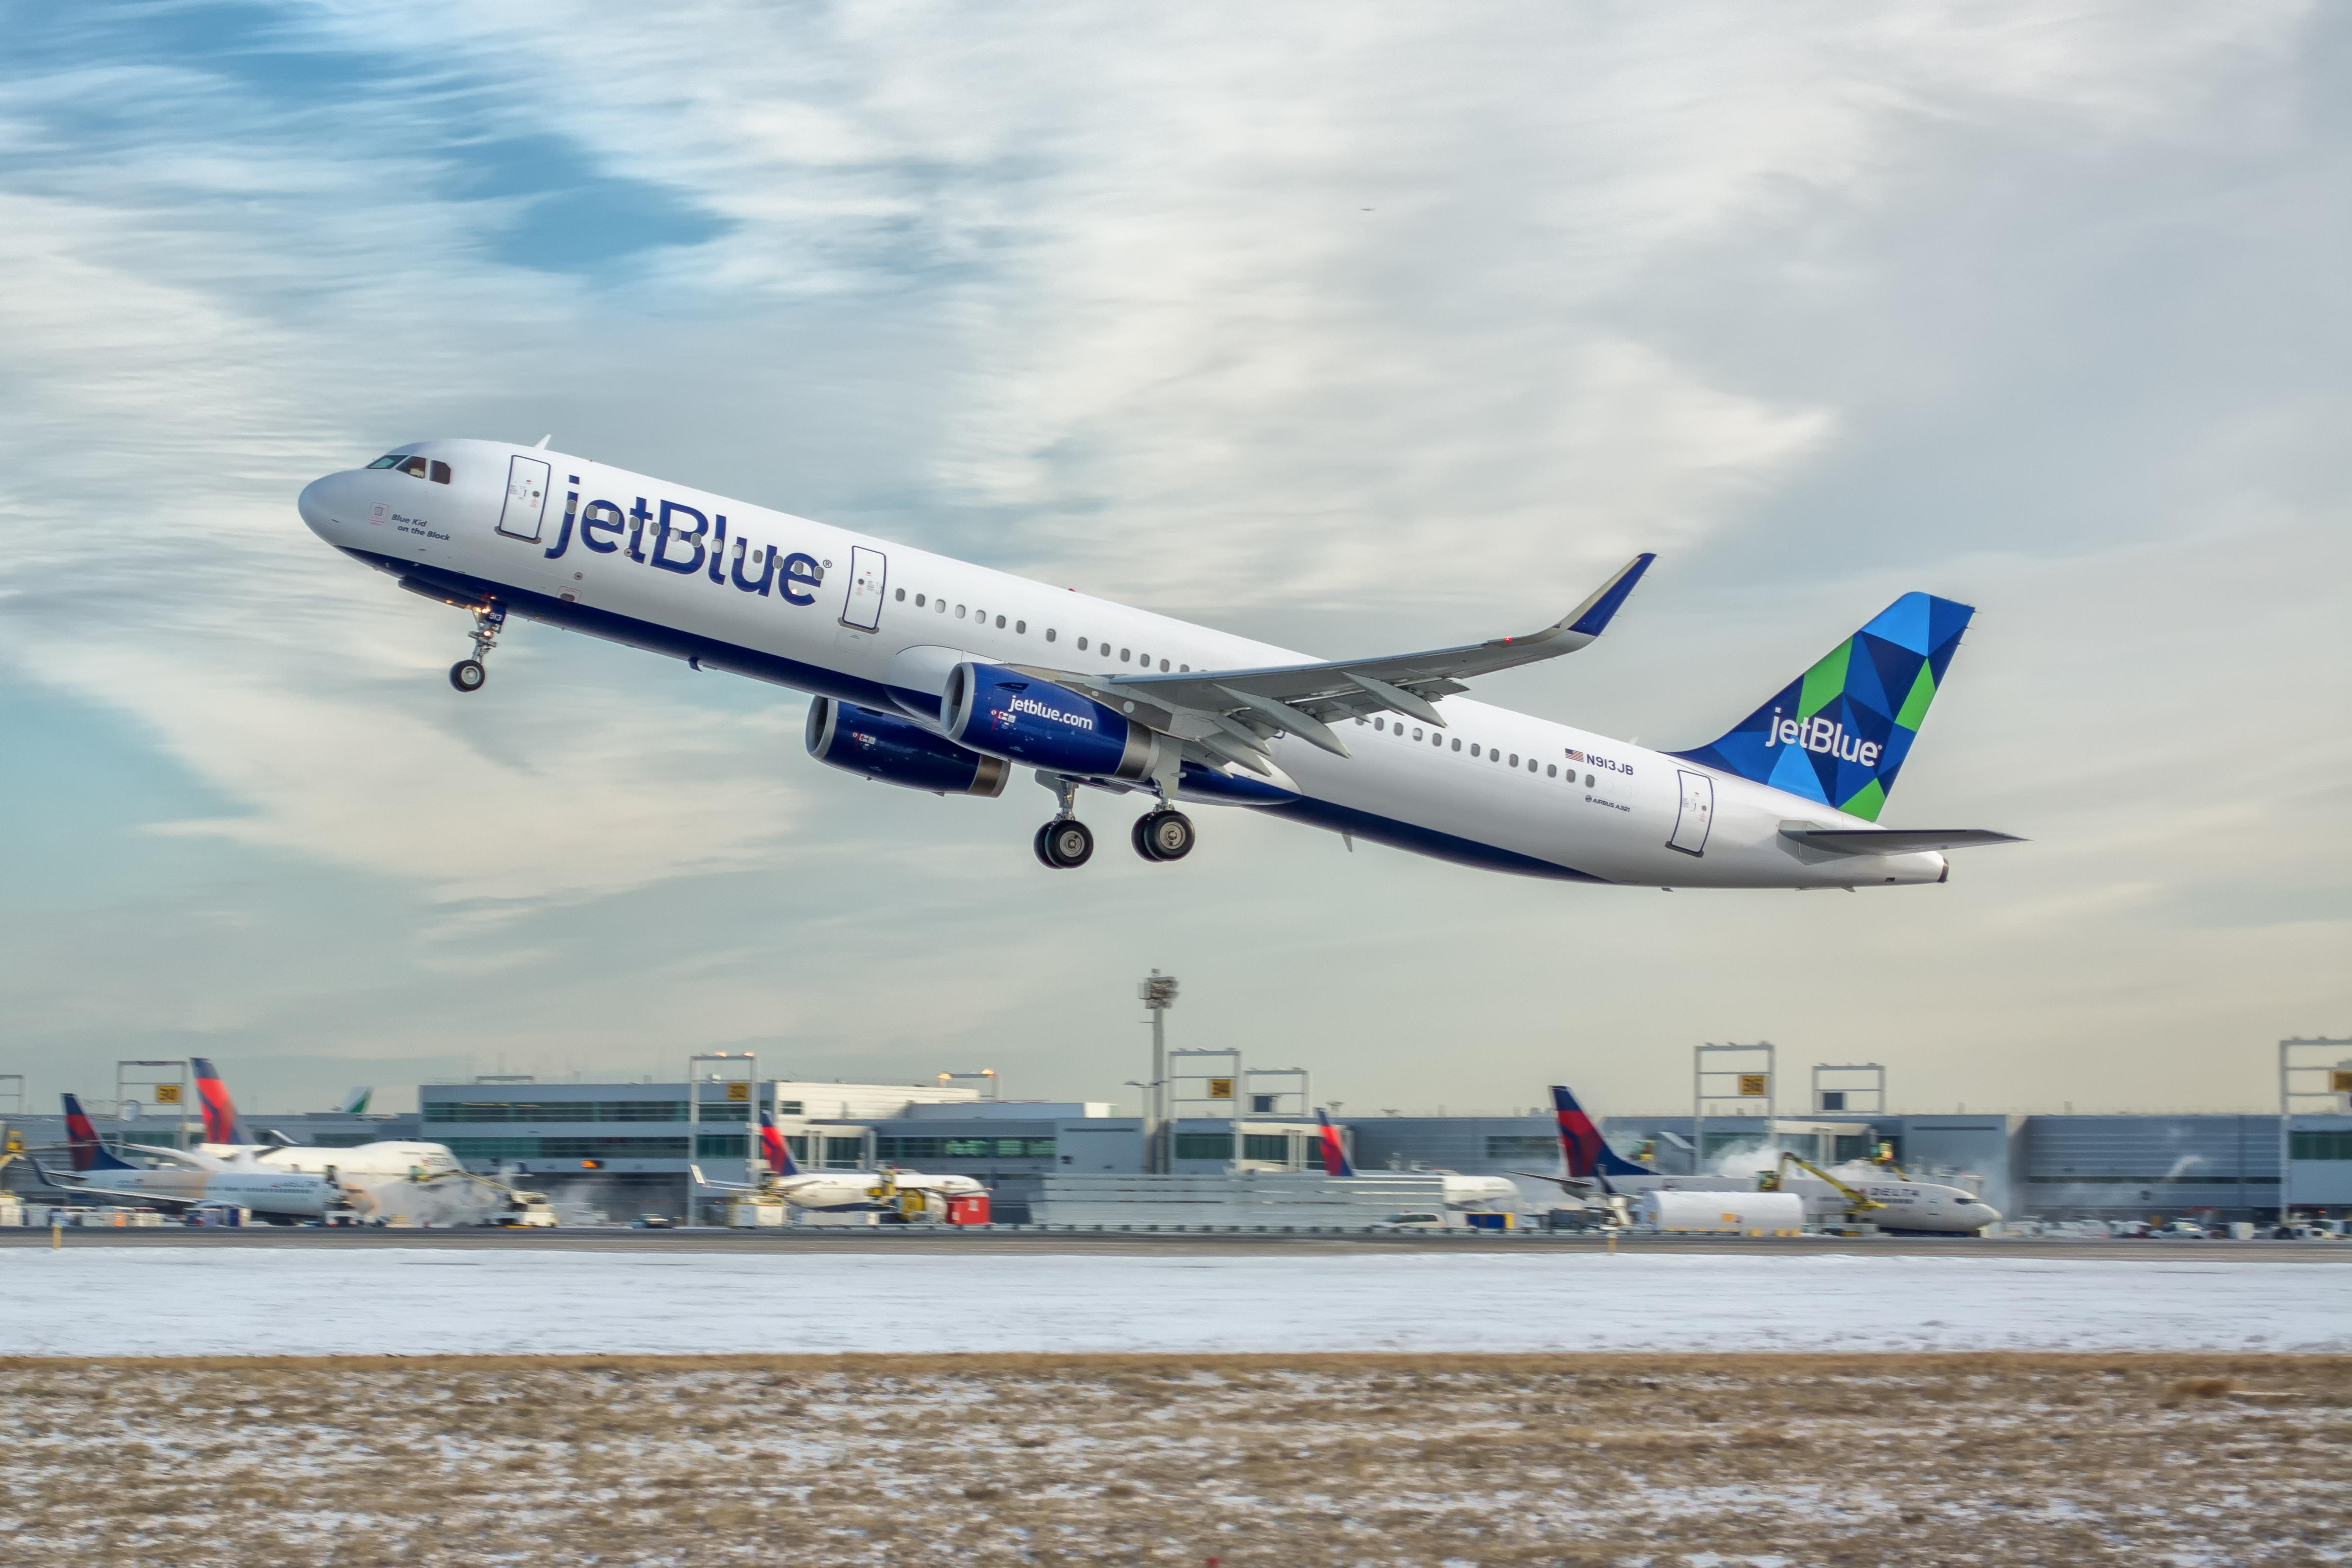 Amazon Prime members can acess free streaming on JetBlue flights